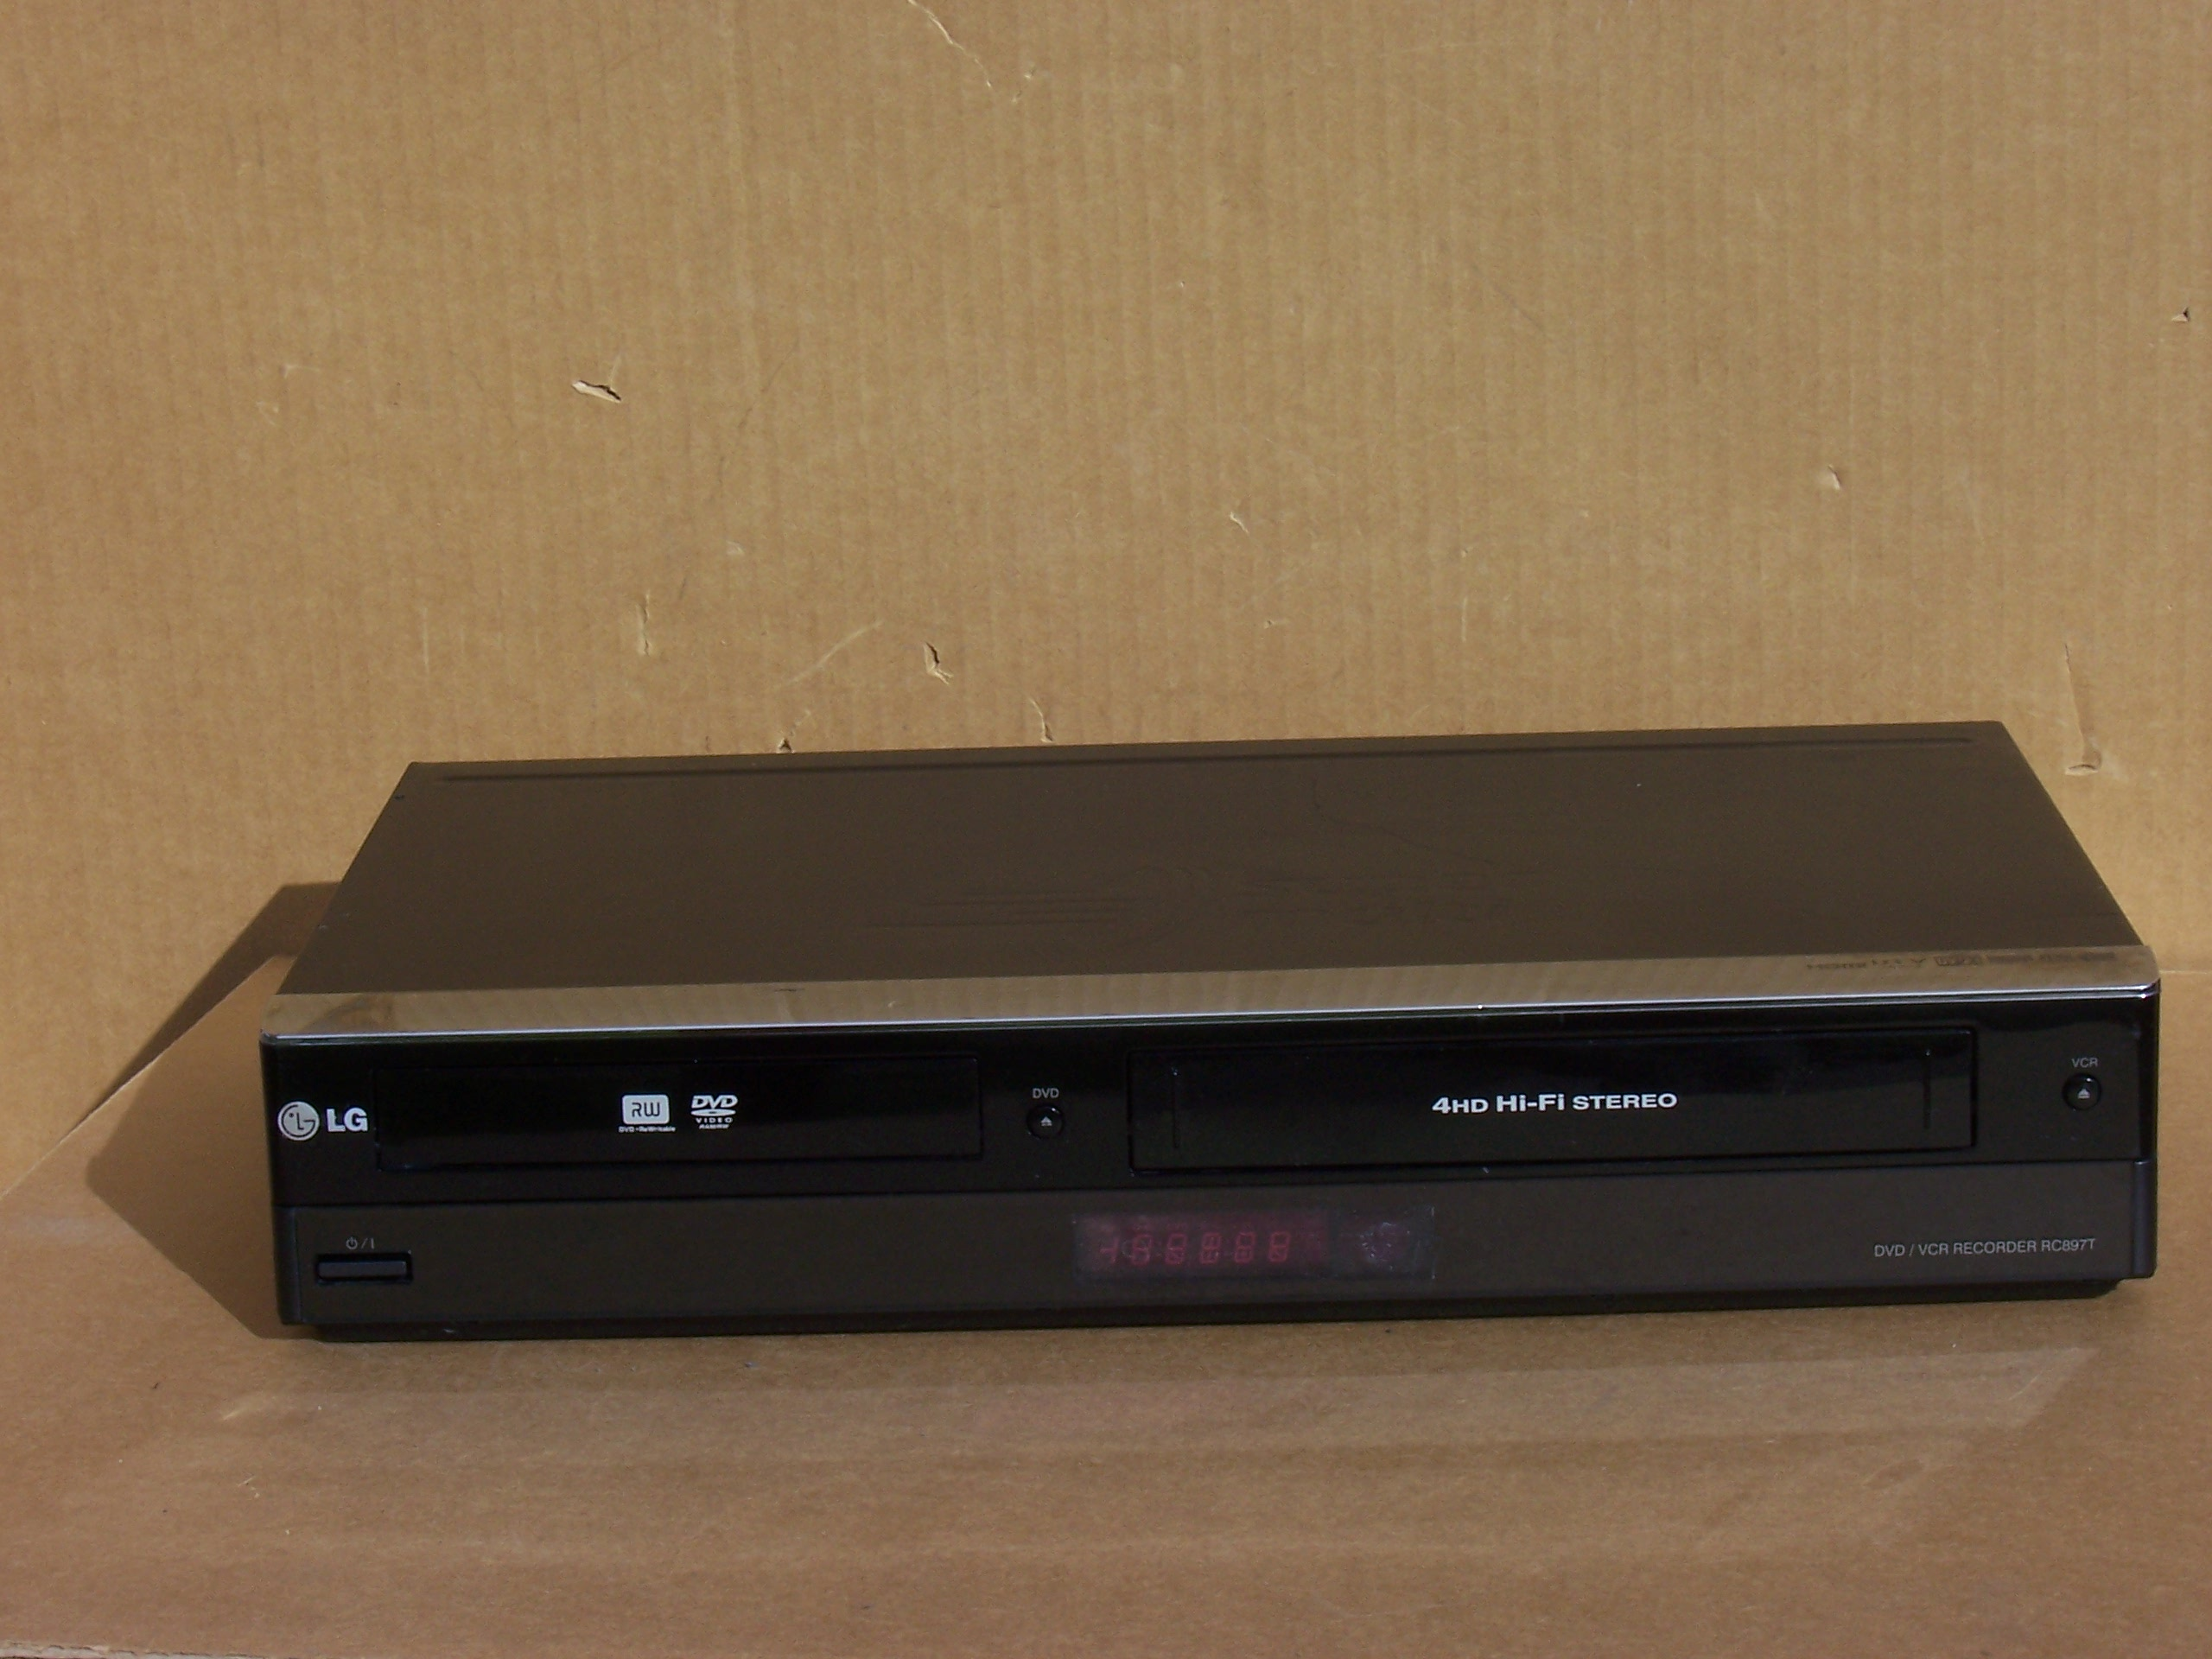 LG RC897T Super Multi DVD-Recorder VCR Combo With Digital